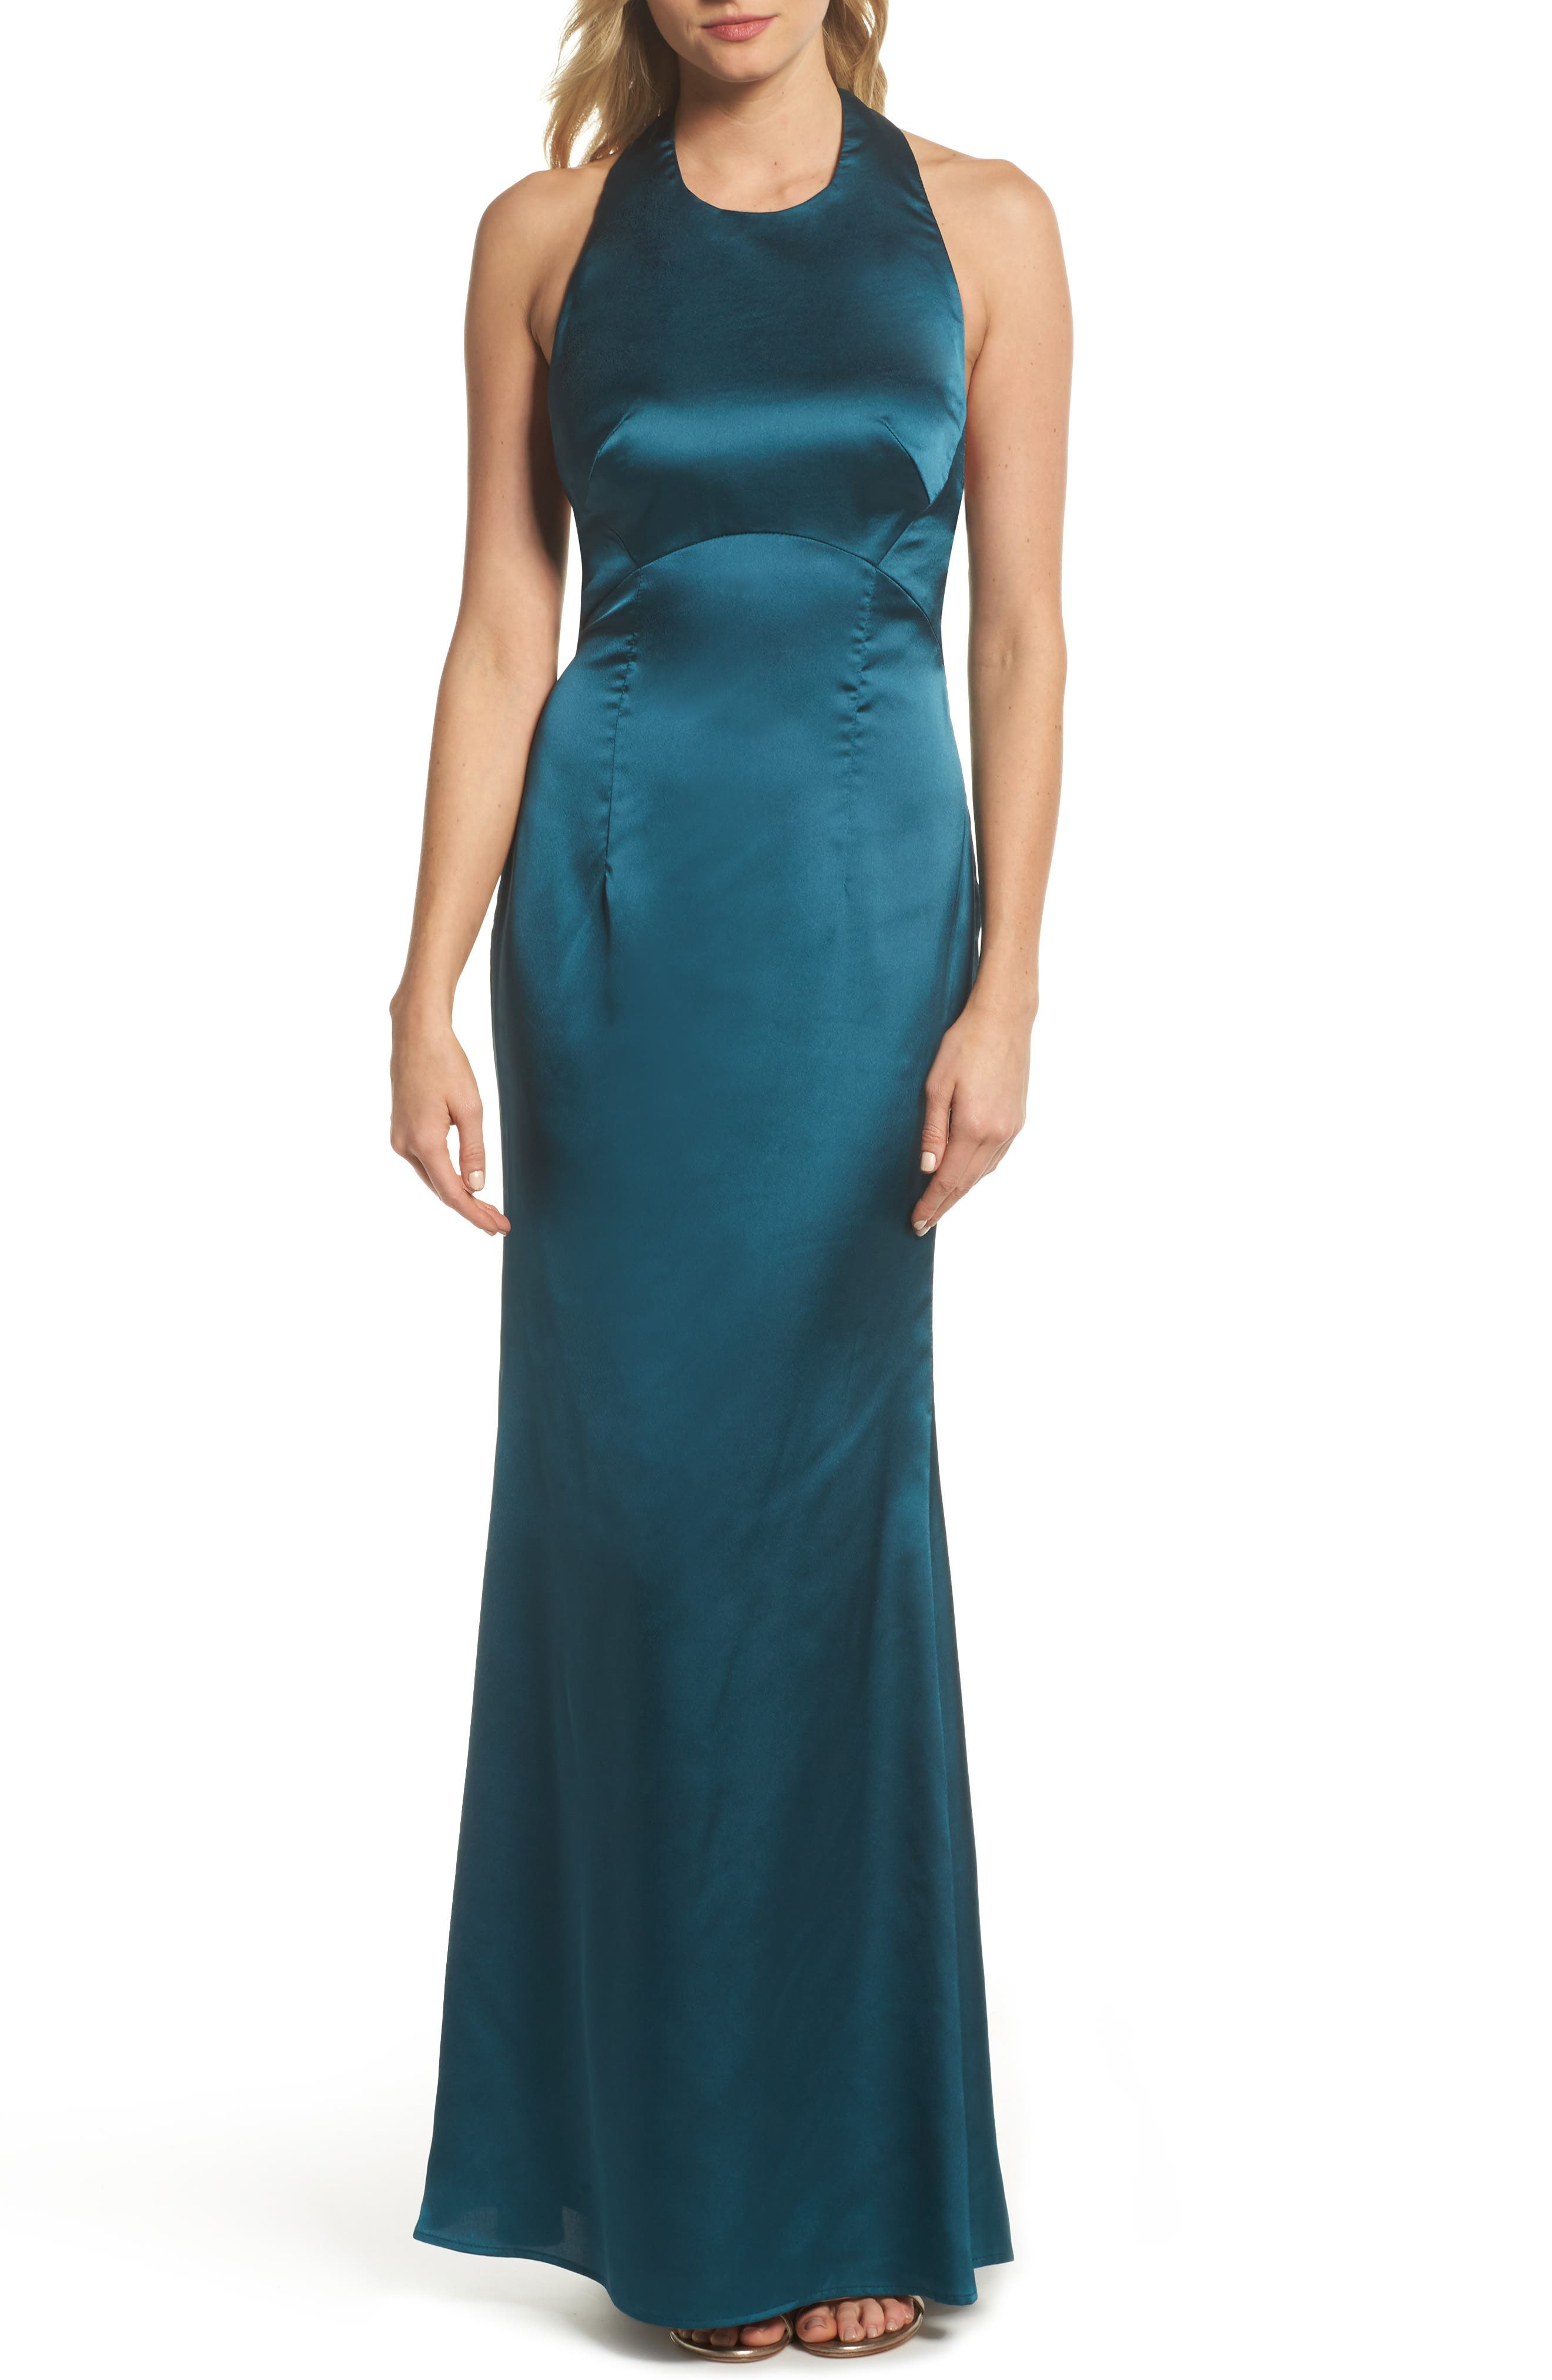 Trixie Halter Gown,                             Main thumbnail 1, color,                             Green